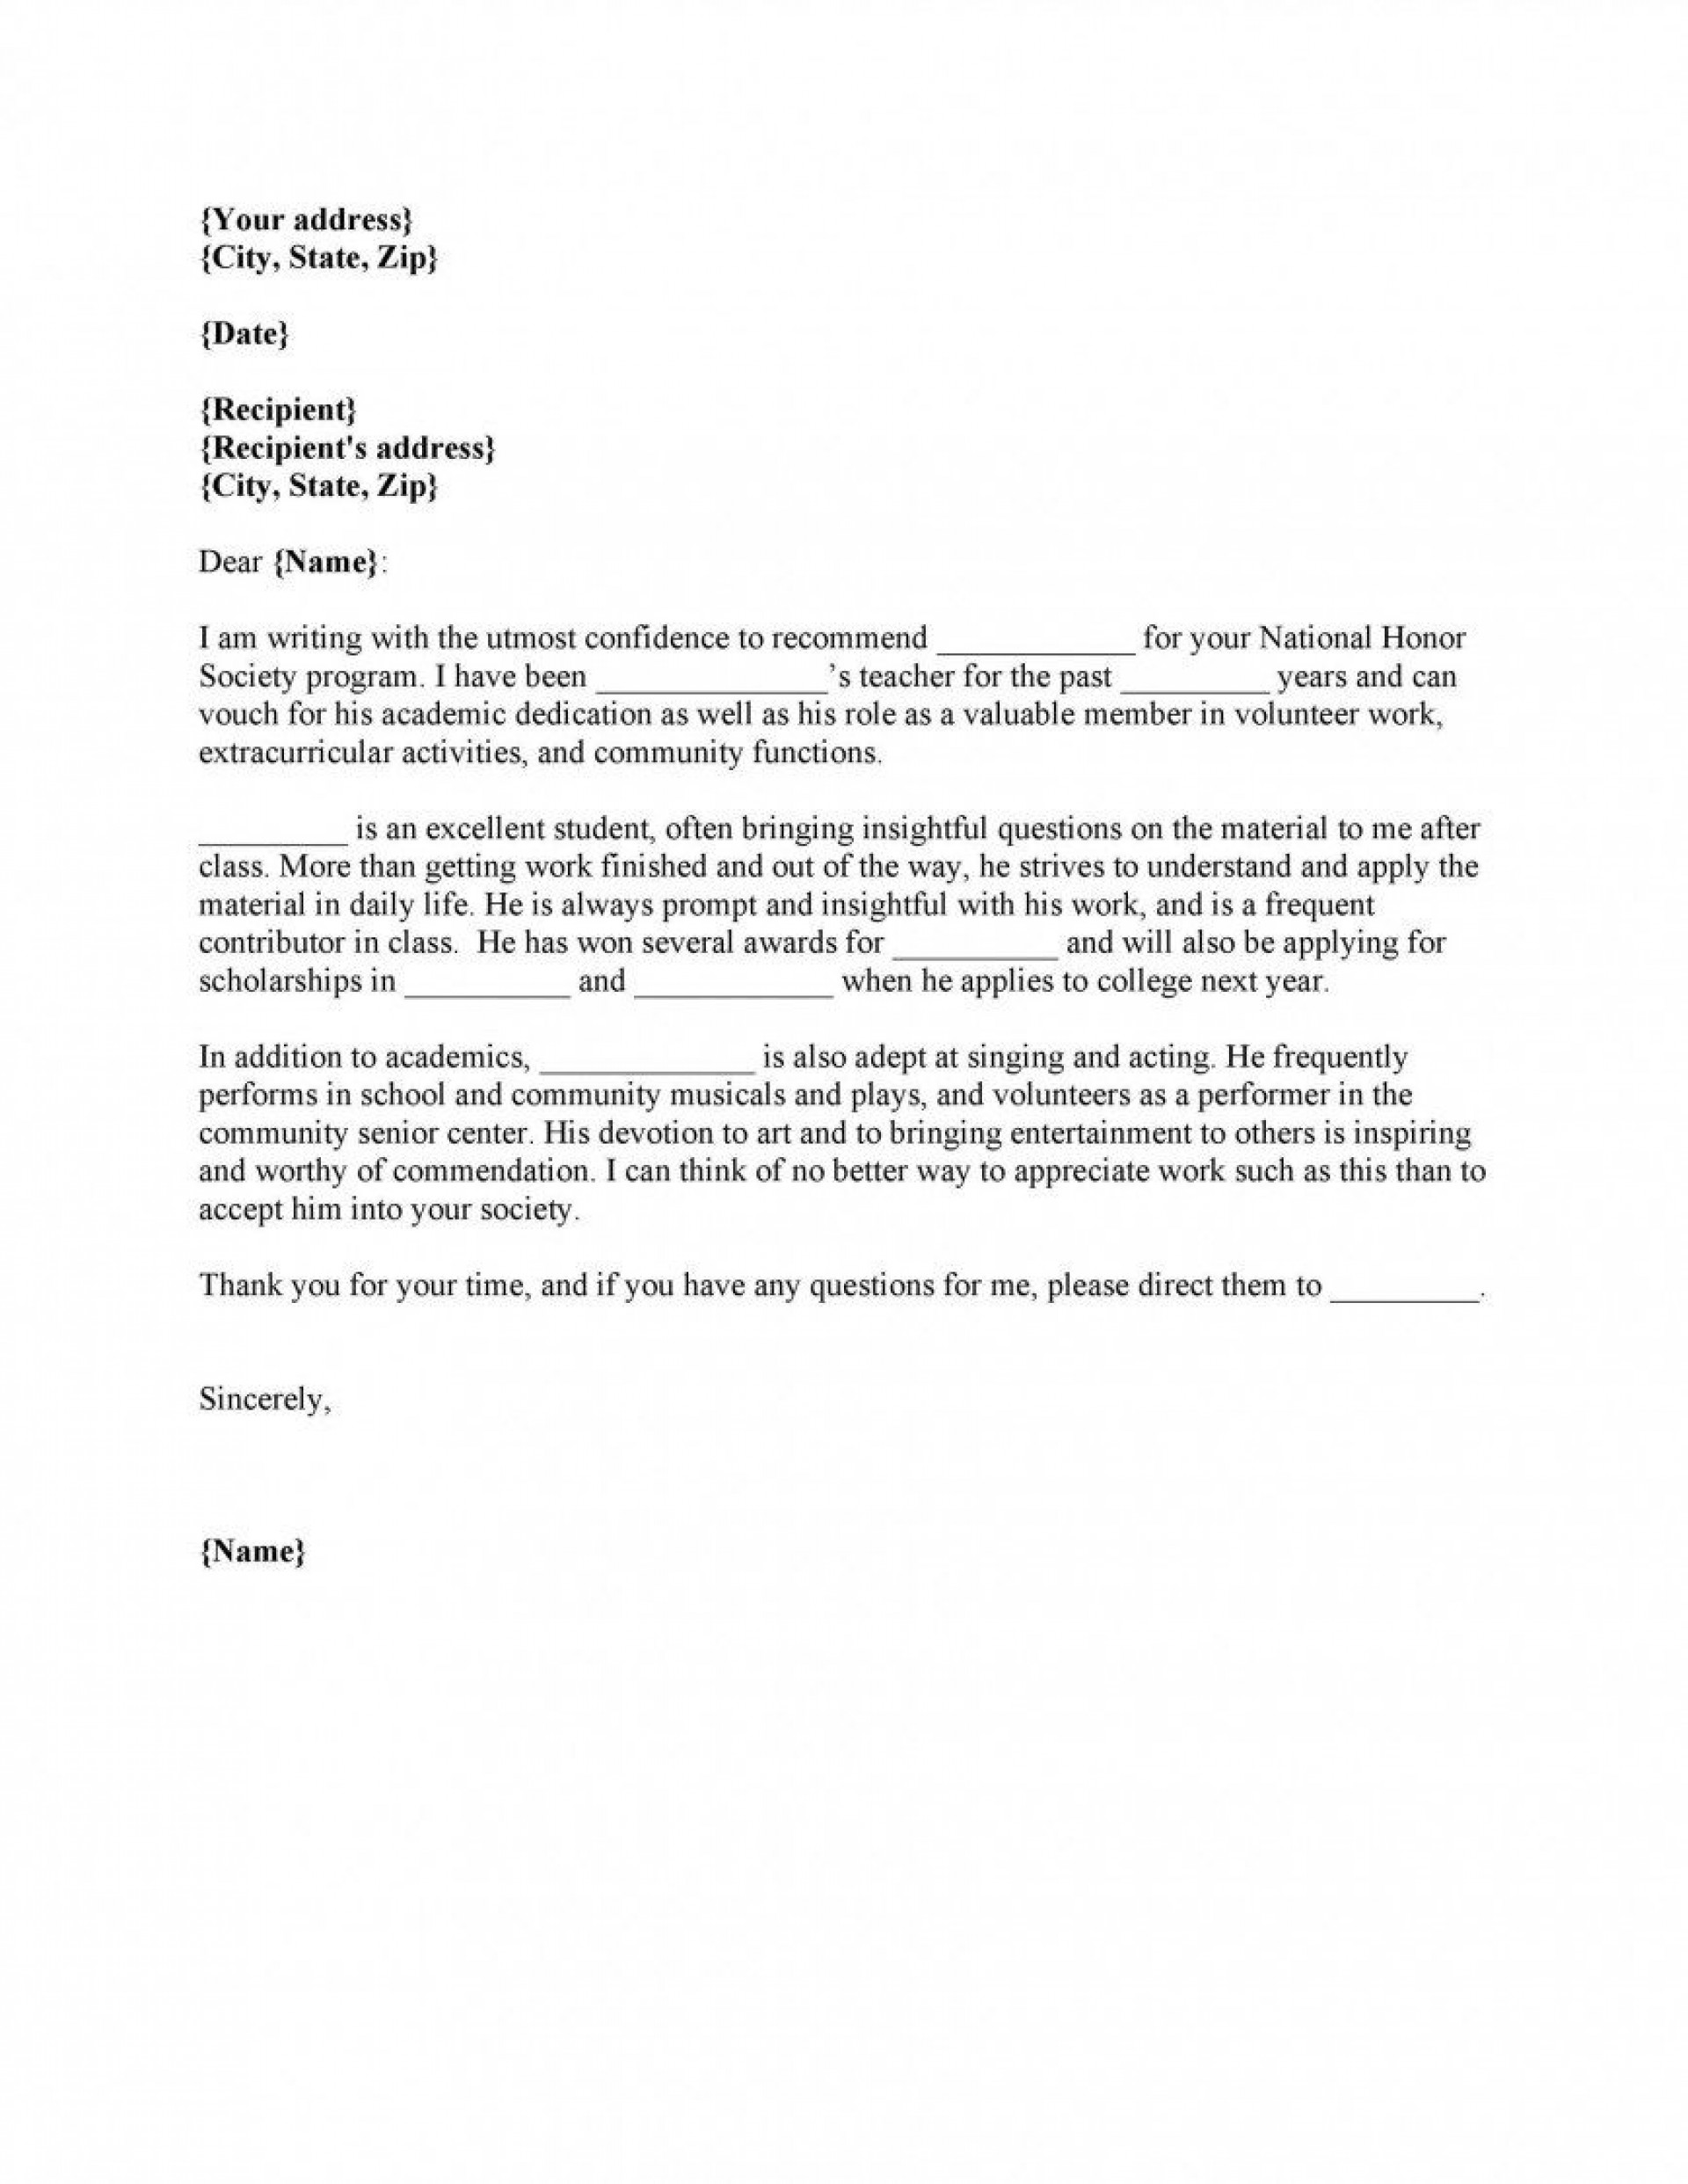 010 Remarkable Letter Of Recommendation Template For College Student High Resolution  Sample From Professor1920